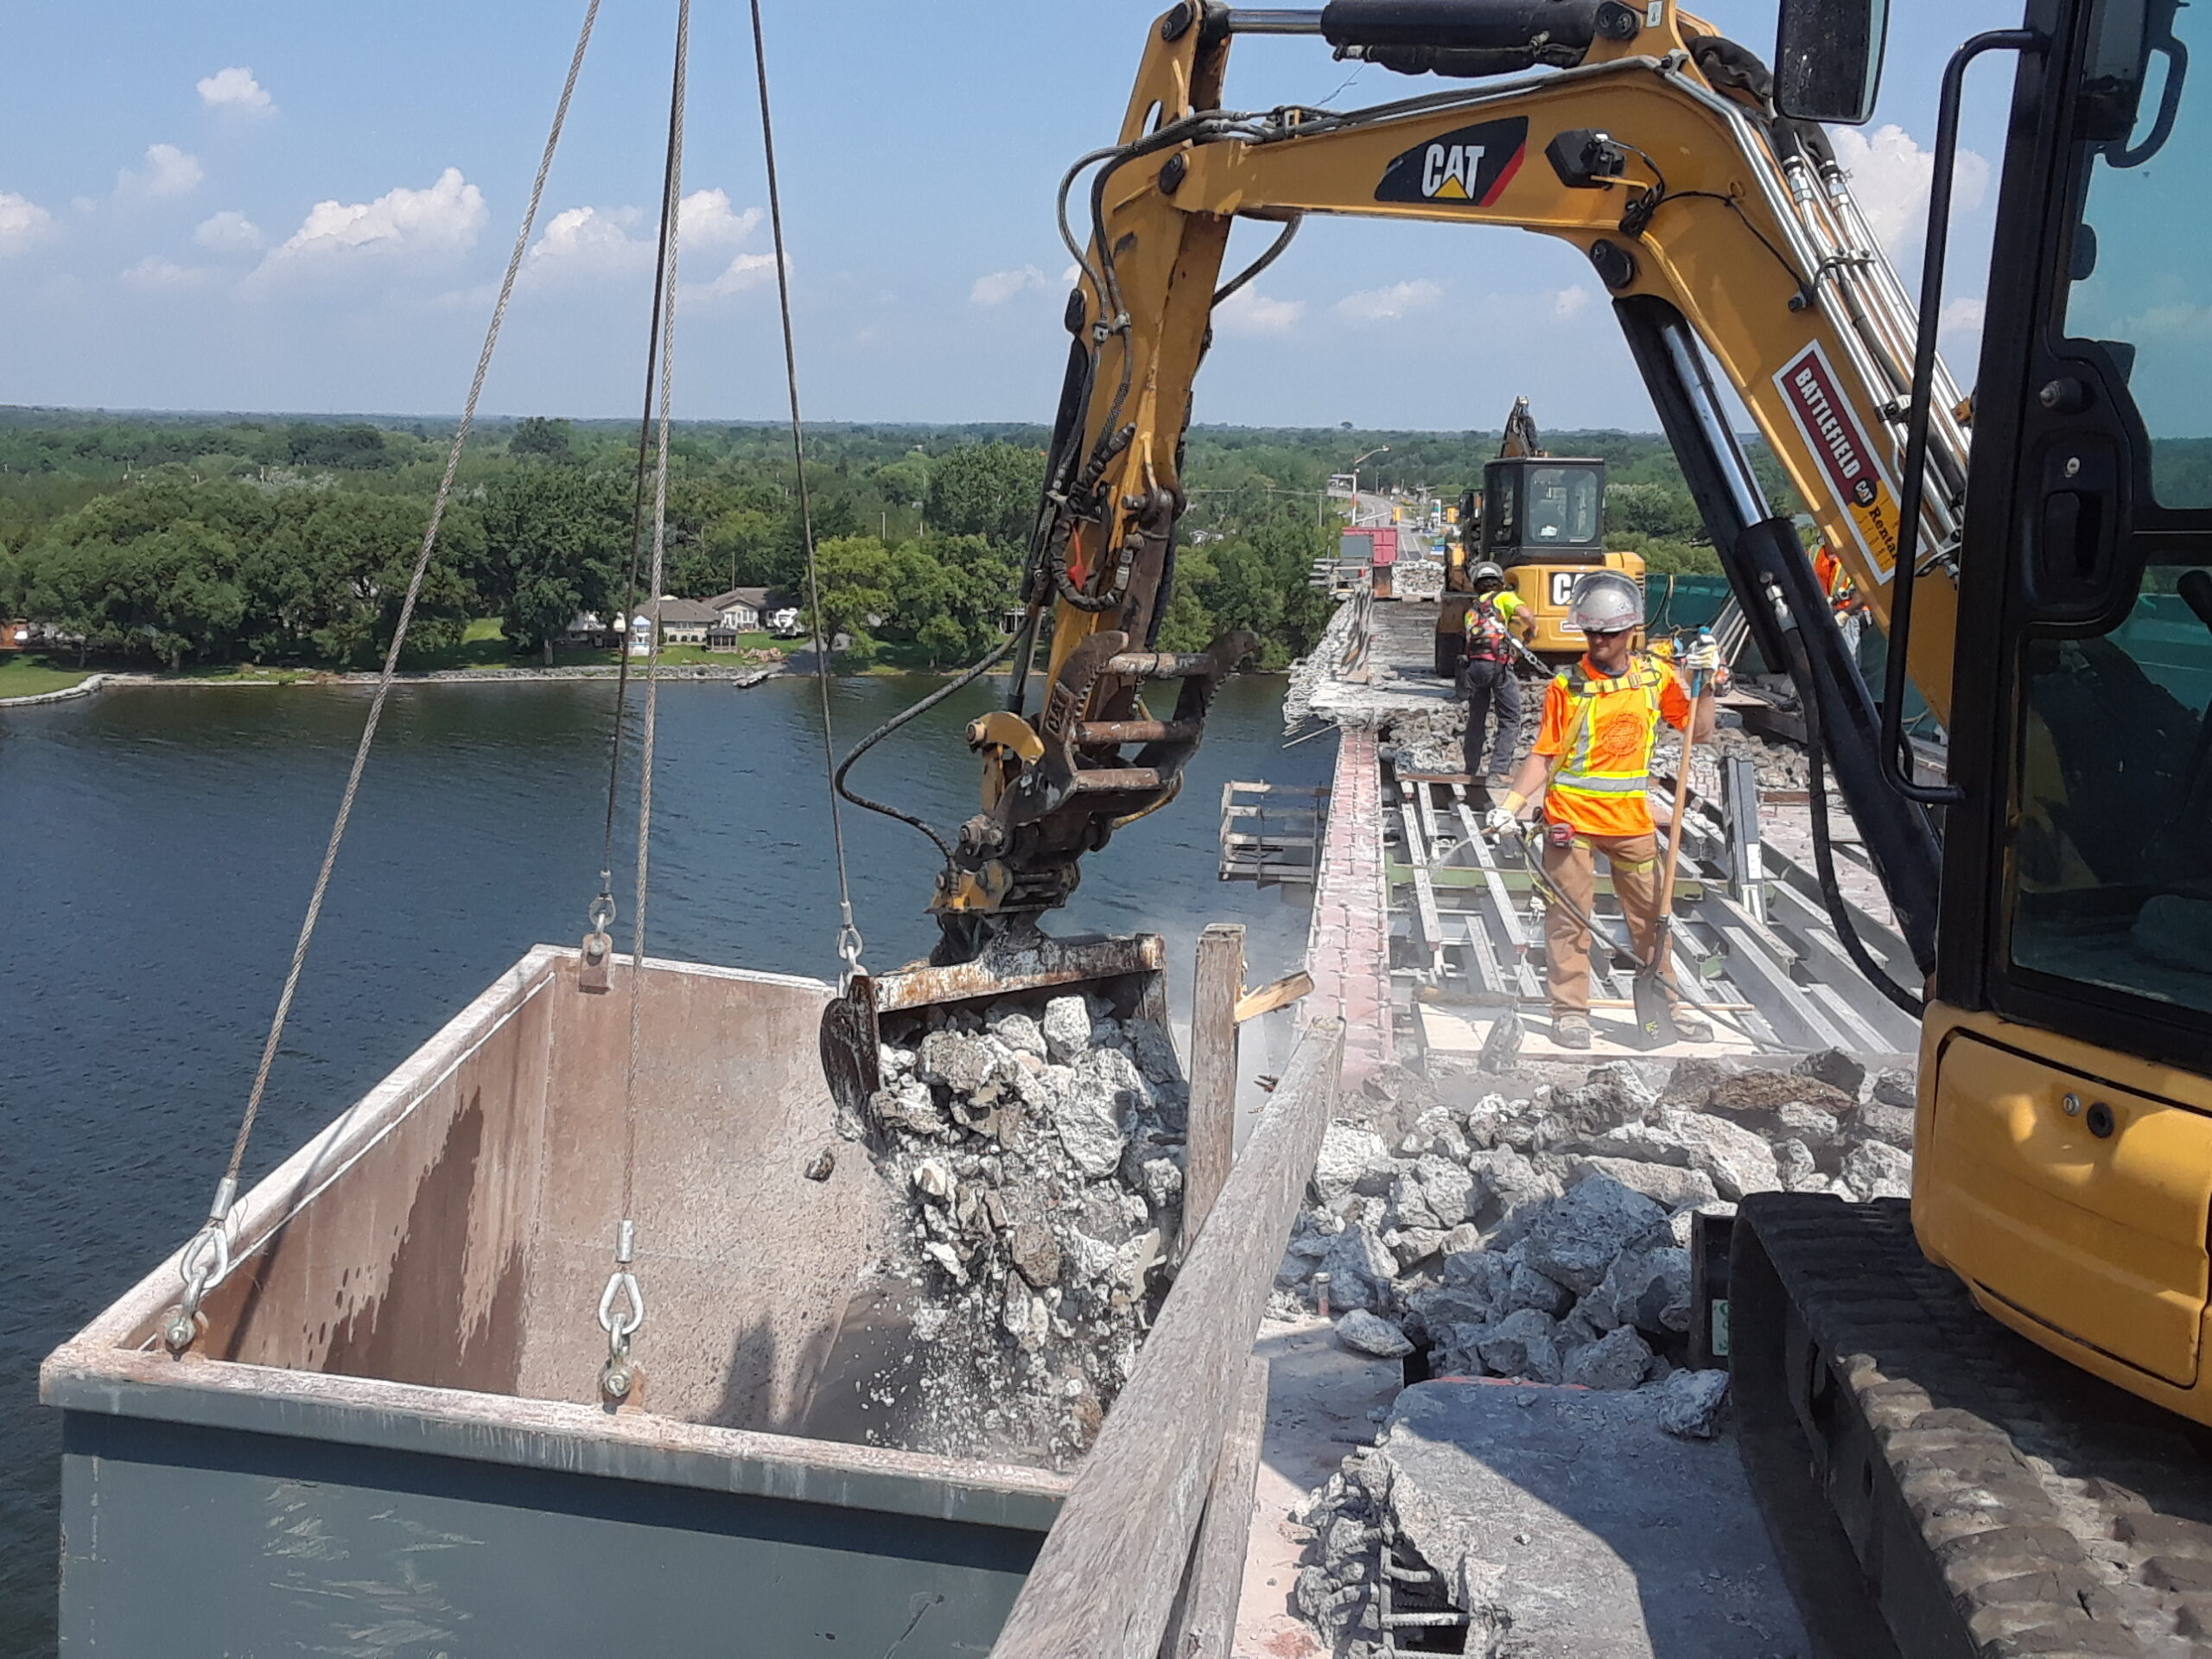 Concrete being removed to the containment bin / keeping the debris damp for dust control